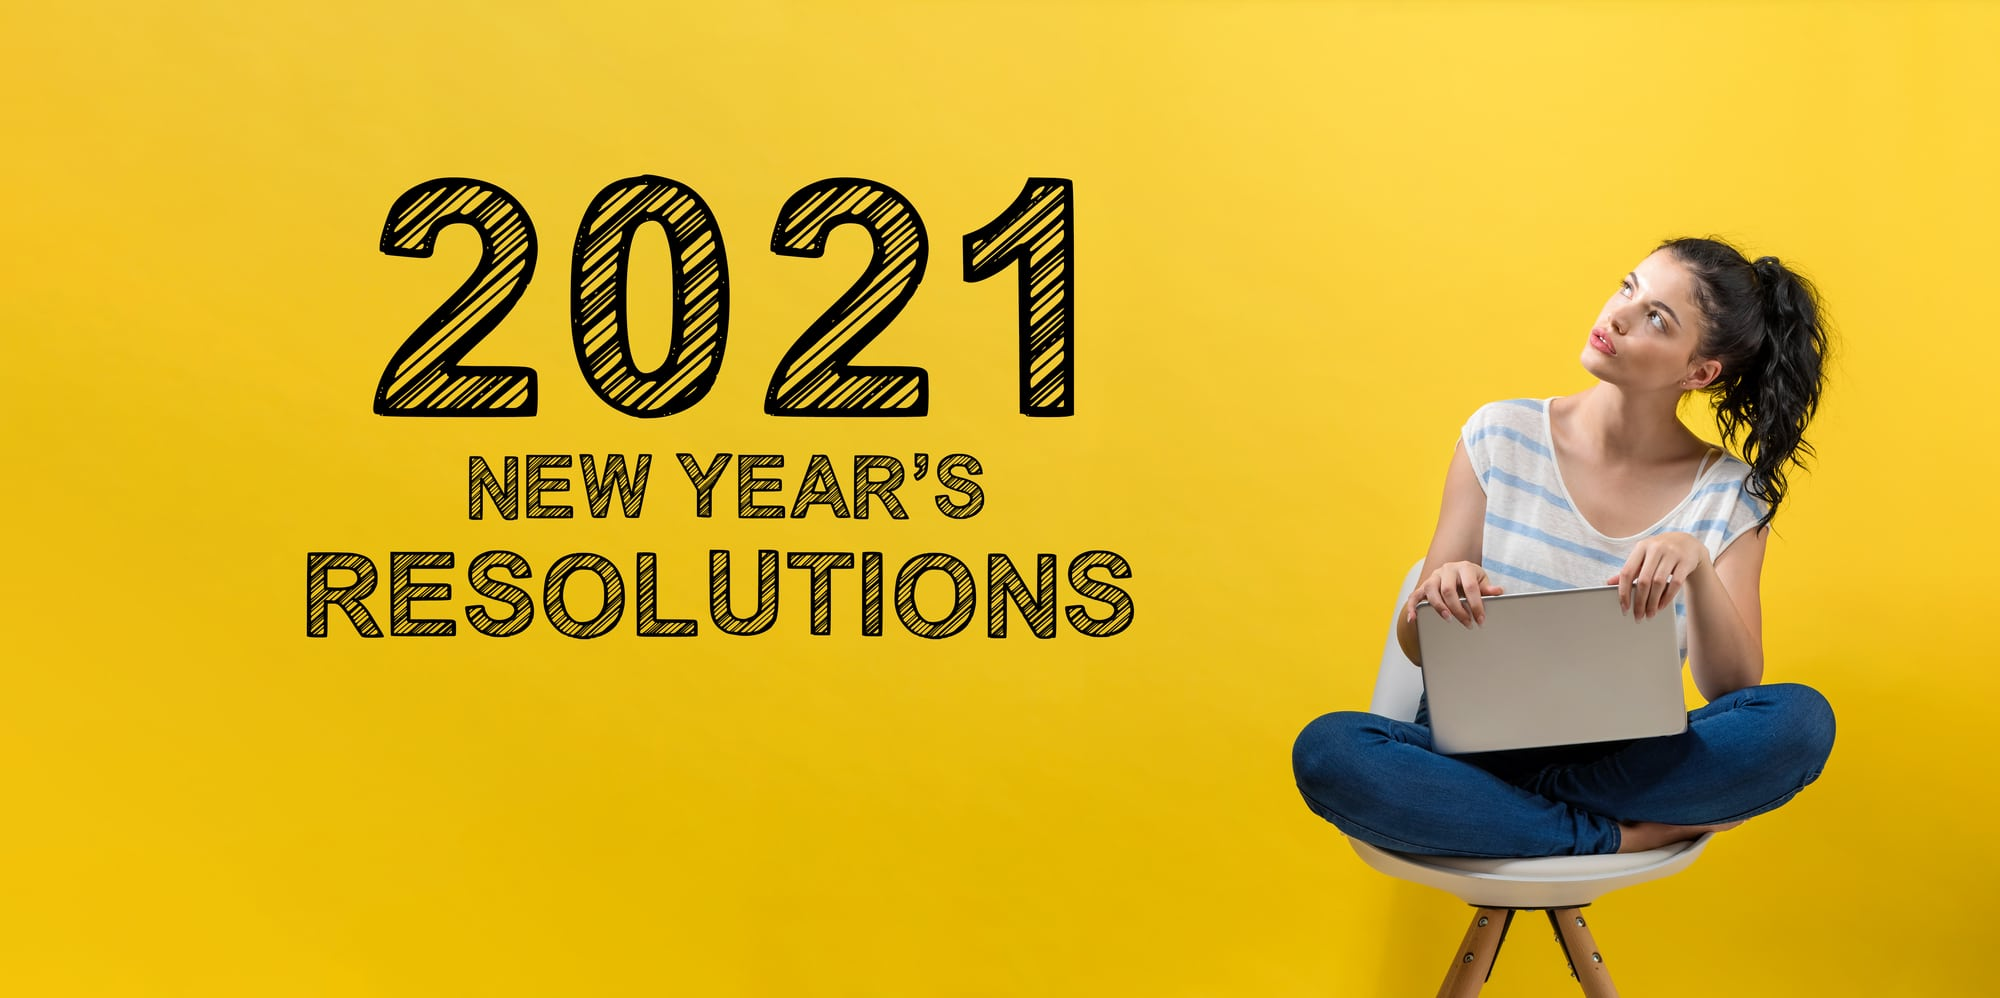 2021 New Years Resolutions with young woman using a laptop computer